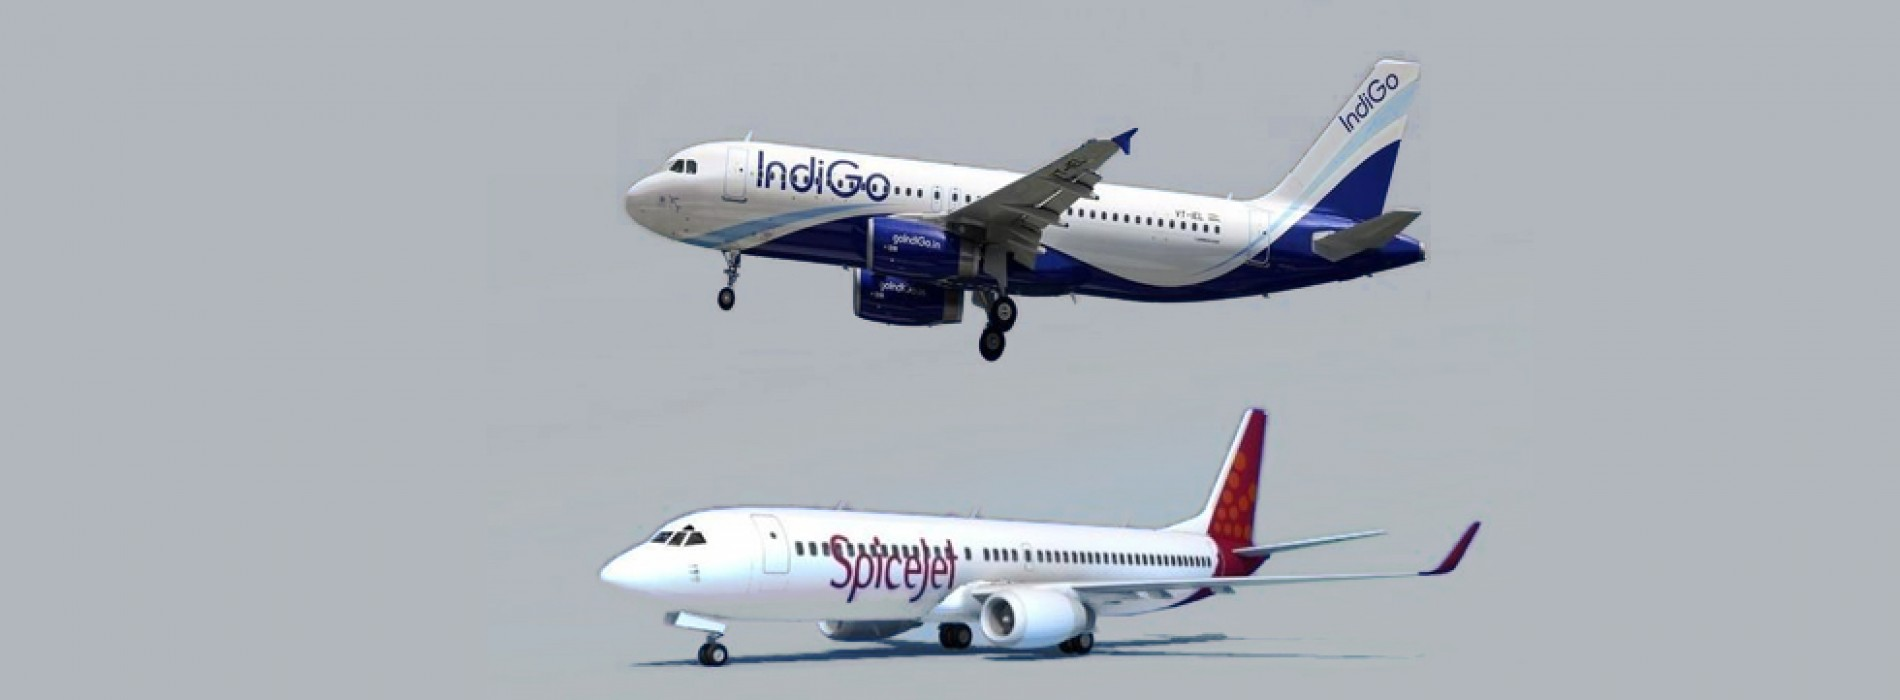 IndiGo, SpiceJet raise red flag over FDI norms in aviation